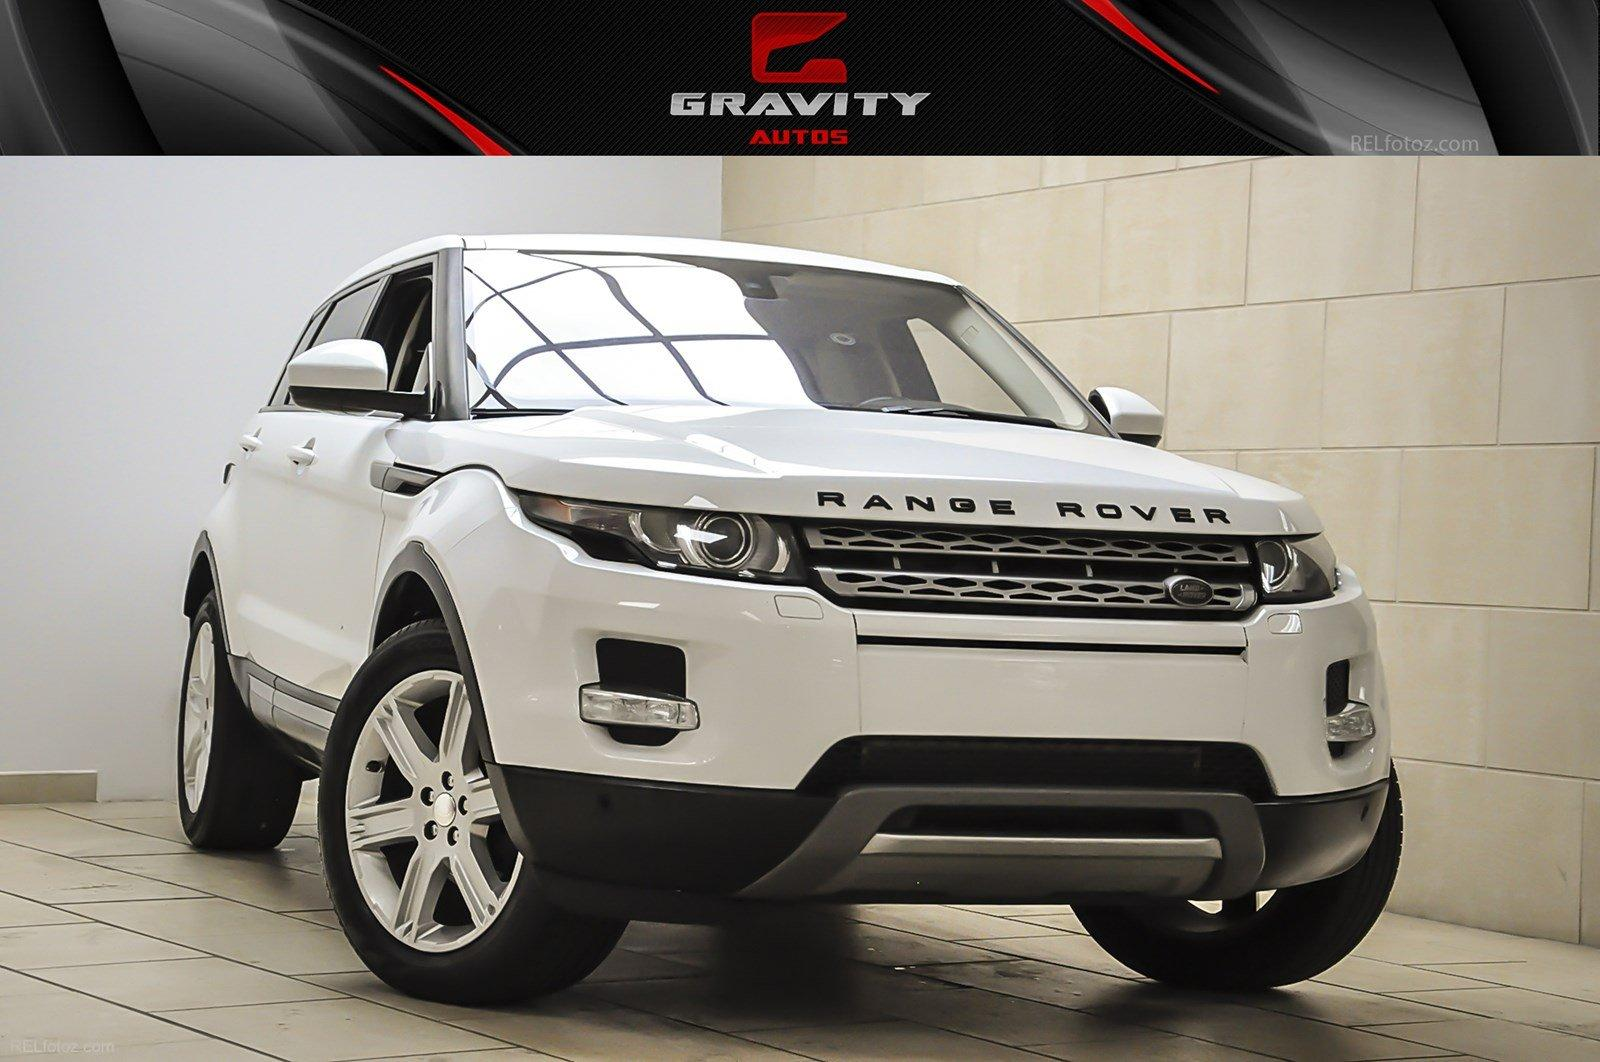 suv landrover photos evoque rov pure information range plus and rover interior land oem fq